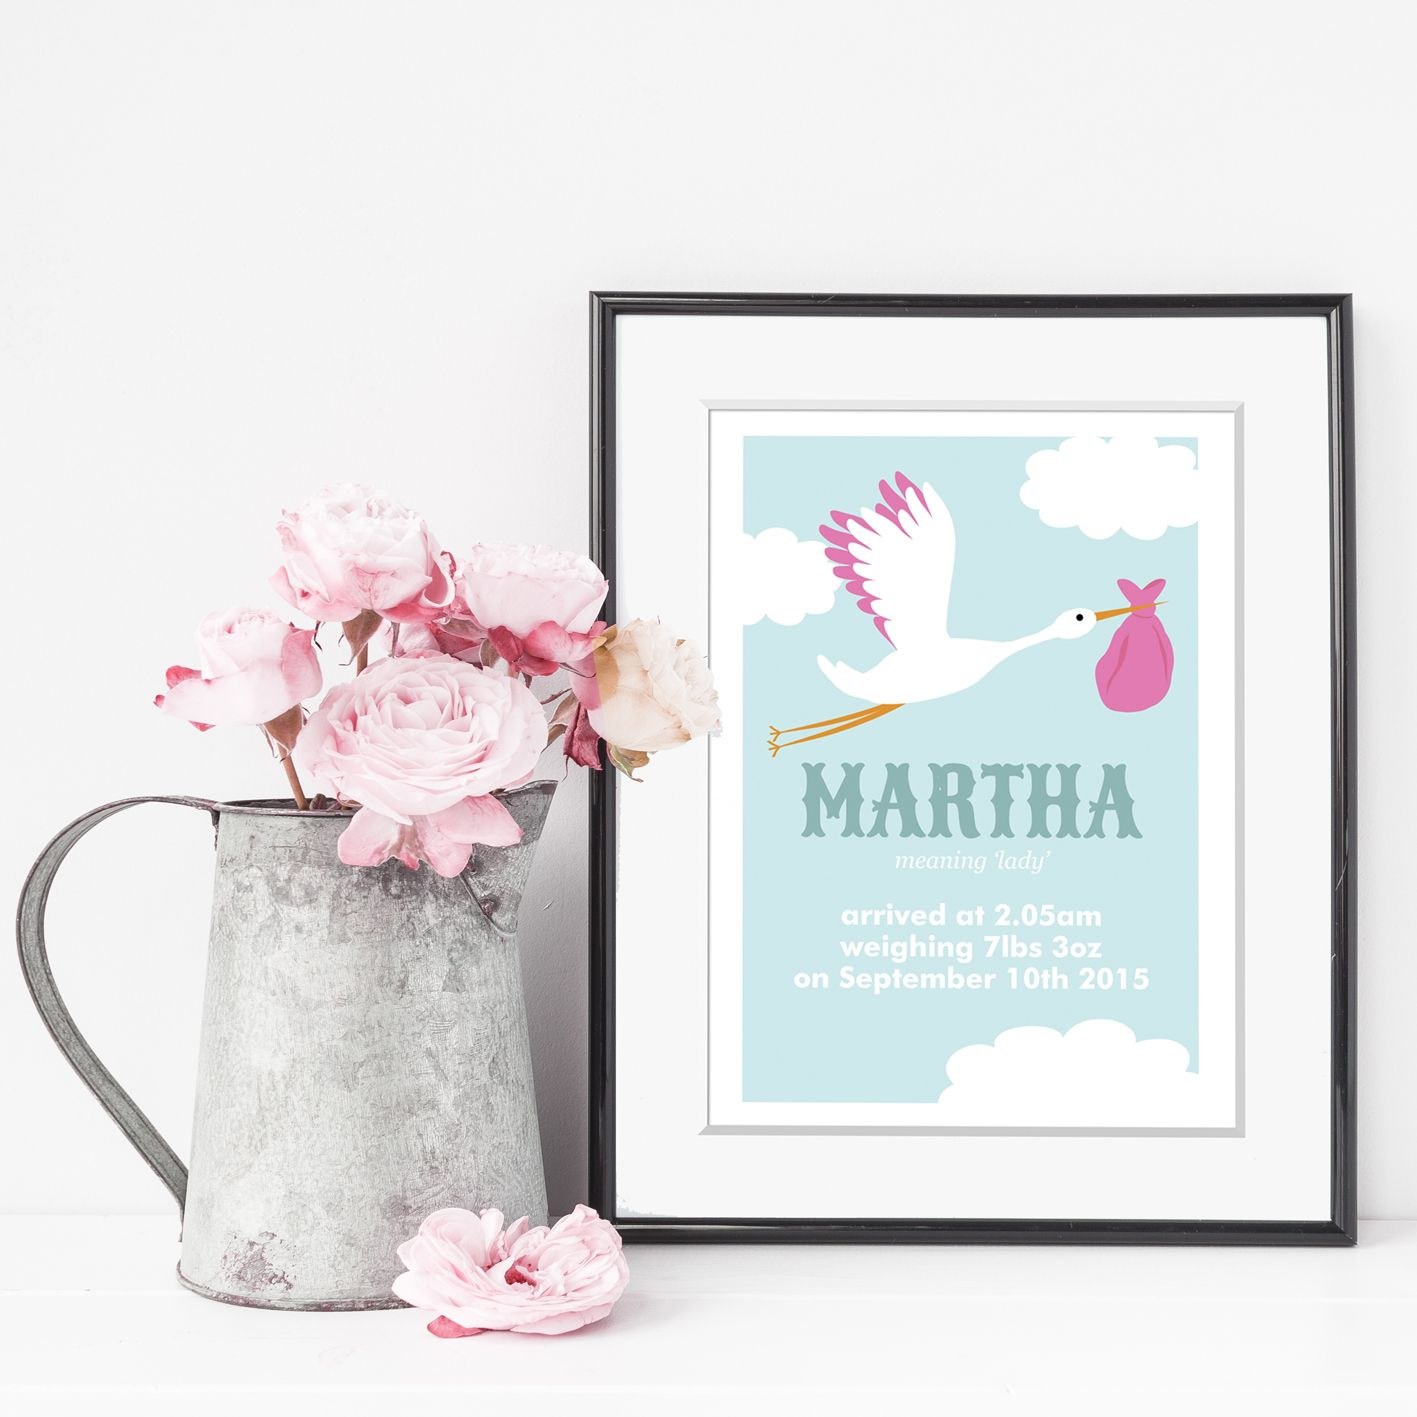 Personalised baby name stork prints personalised new baby gifts personalised baby name stork prints negle Gallery